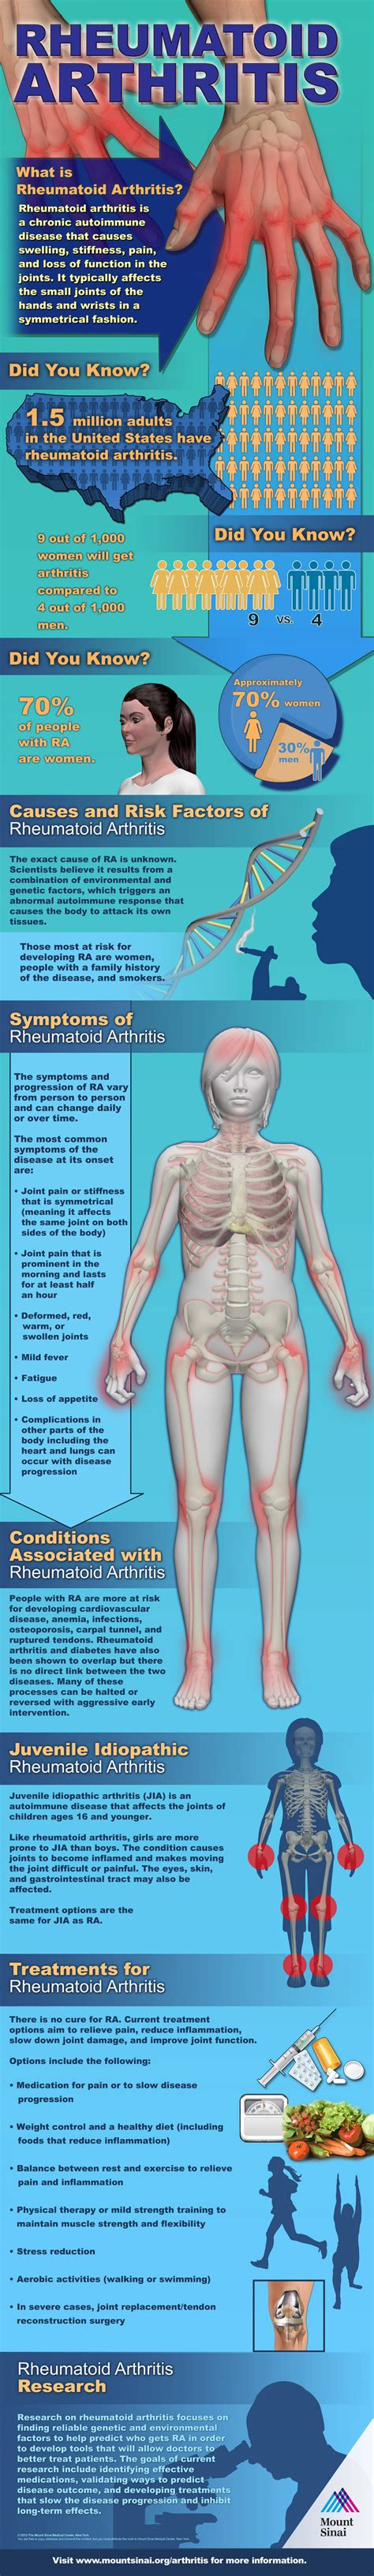 What Is Rheumatoid Arthritis? (infographic)  Ergonomics Fix. Online College Associate Degrees. Flying Squirrels In House Plastic Surgeons Nj. Pennsylvania Web Design Company. Local Printing Company Risk Management Charts. Eastern Neurology Greenville Nc. Pest Control In Restaurants Moving On Songs. Top Mass Communication Colleges. Sales Commission Software Suboxone Vs Subutex